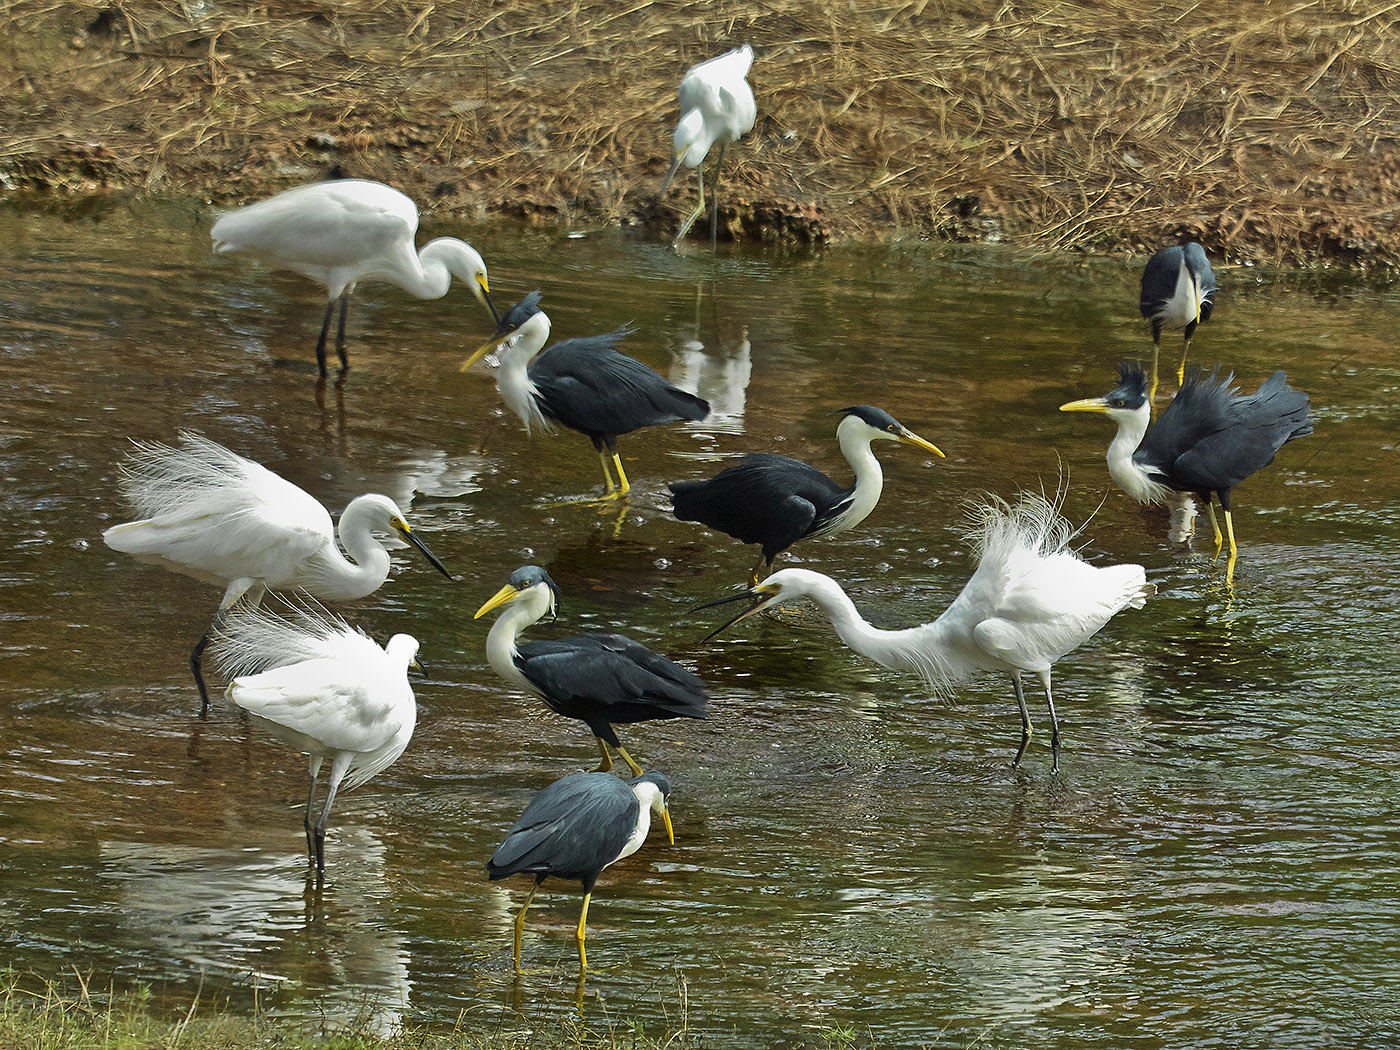 Little Egret, Pied Heron